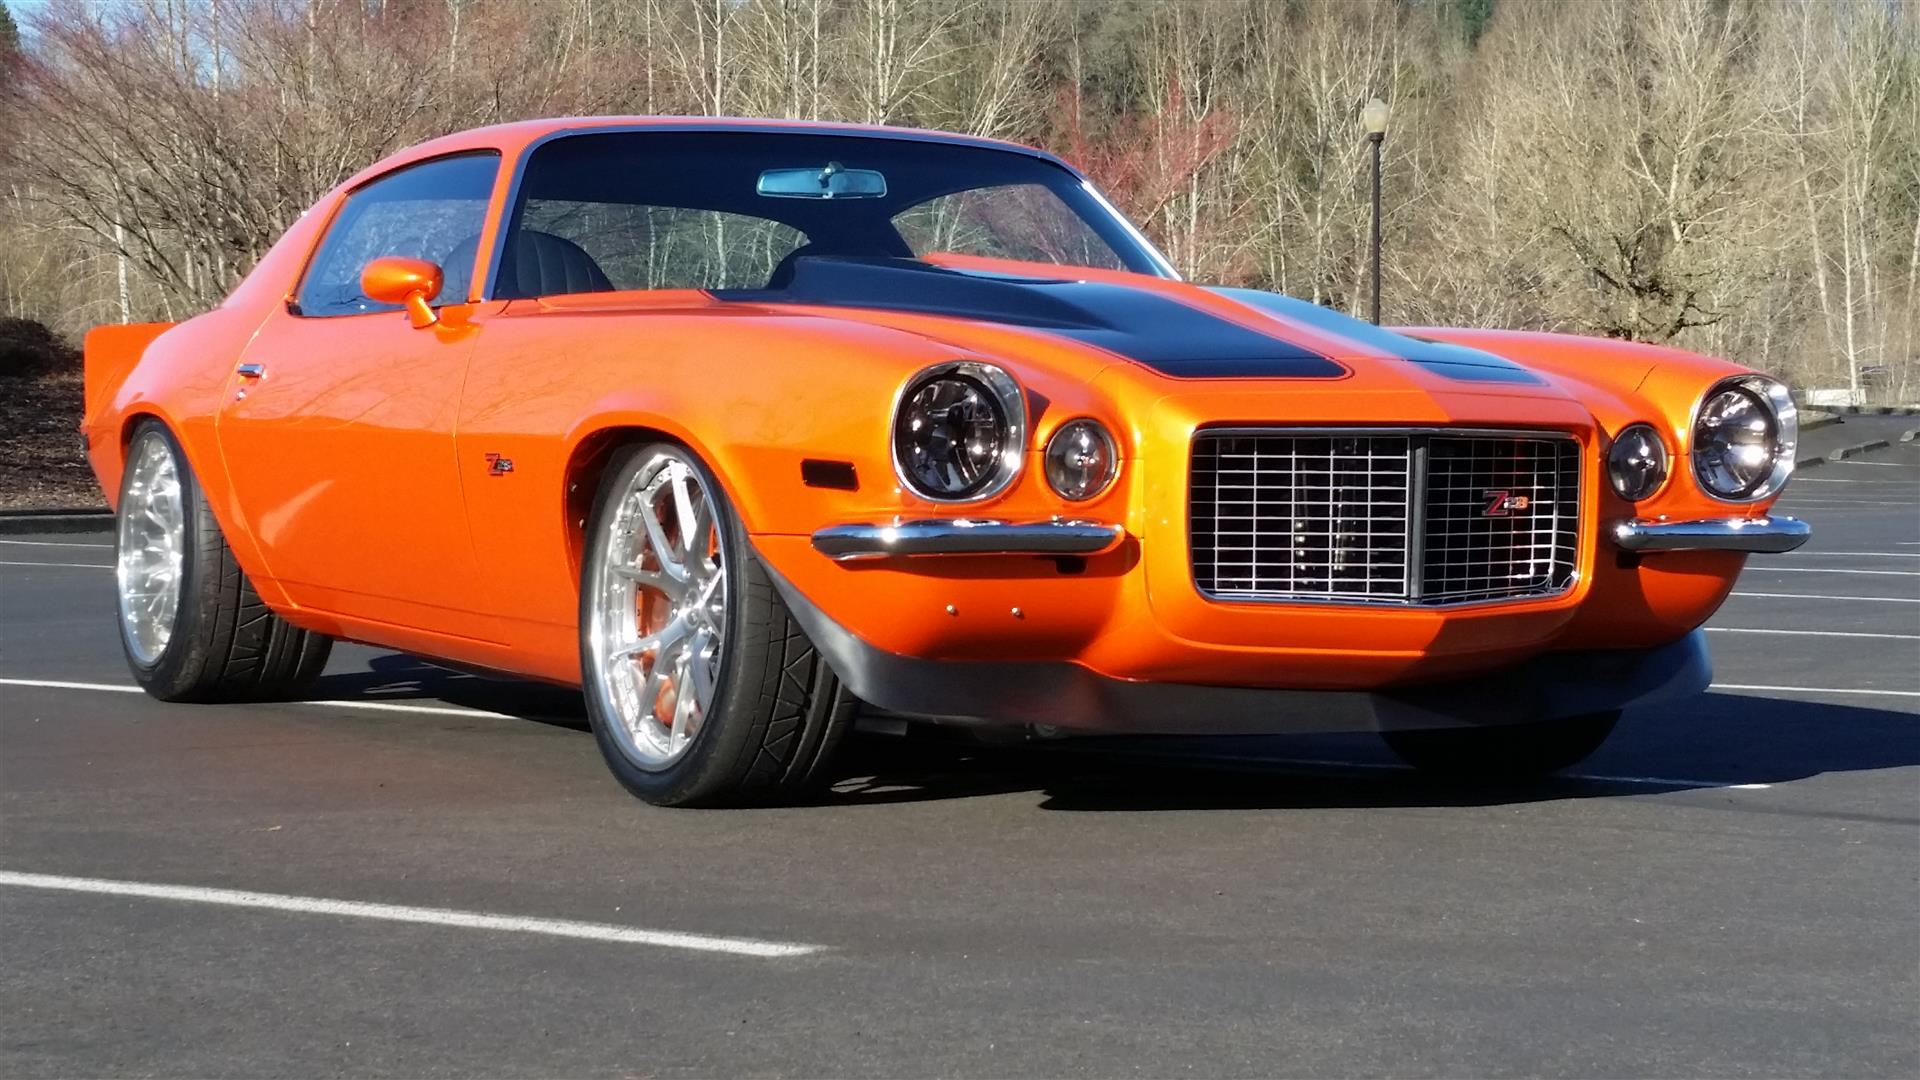 Awesome Orange Pro Touring 1971 Chevrolet Camaro by Jeff Richards